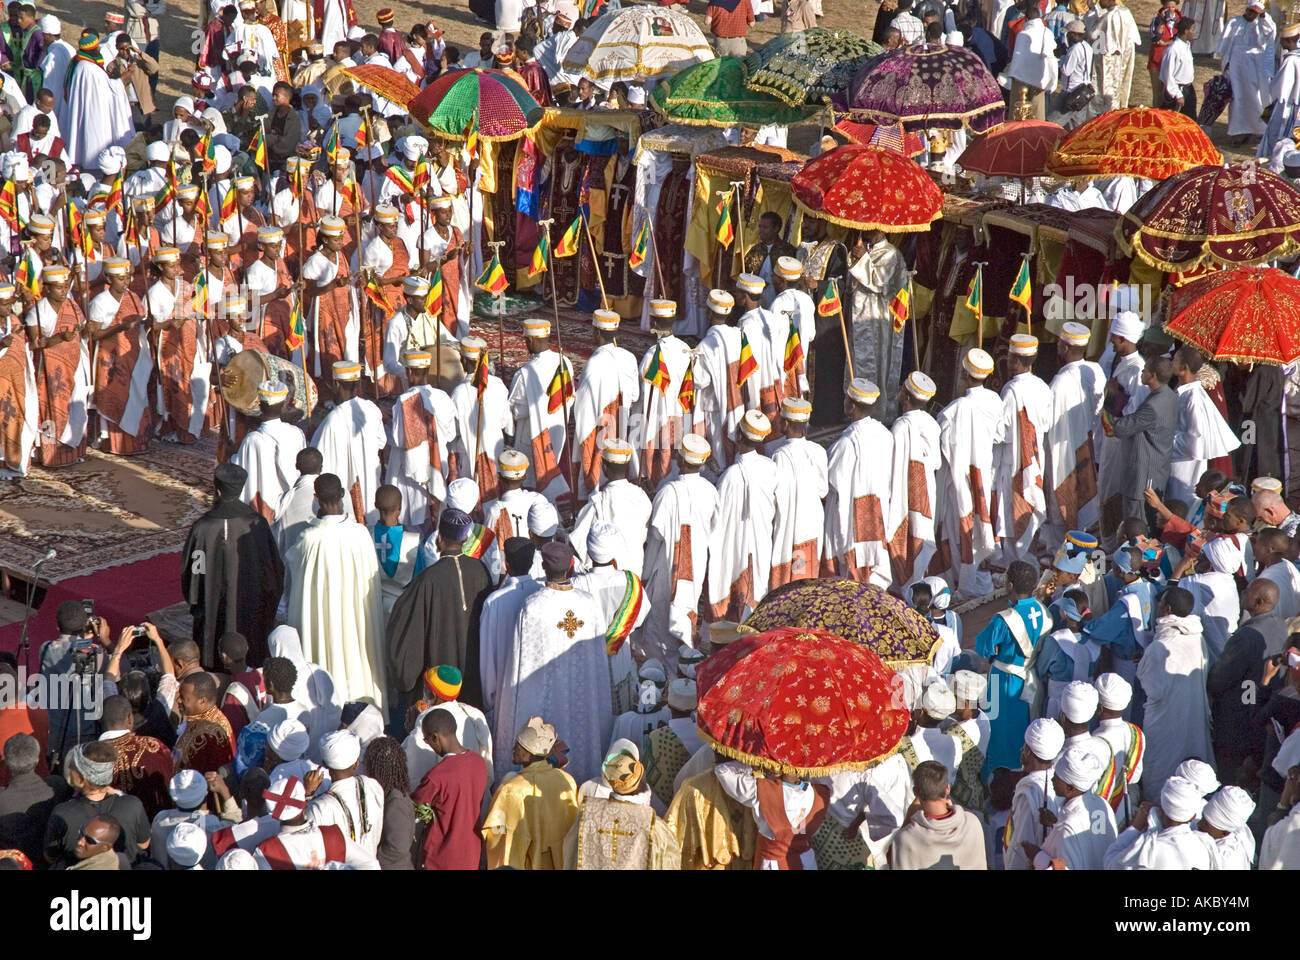 Debterras (Choir members) of the Ethiopian Orthodox Church perform sacred dance at 'Timkat' (Epiphany) celebrations, - Stock Image